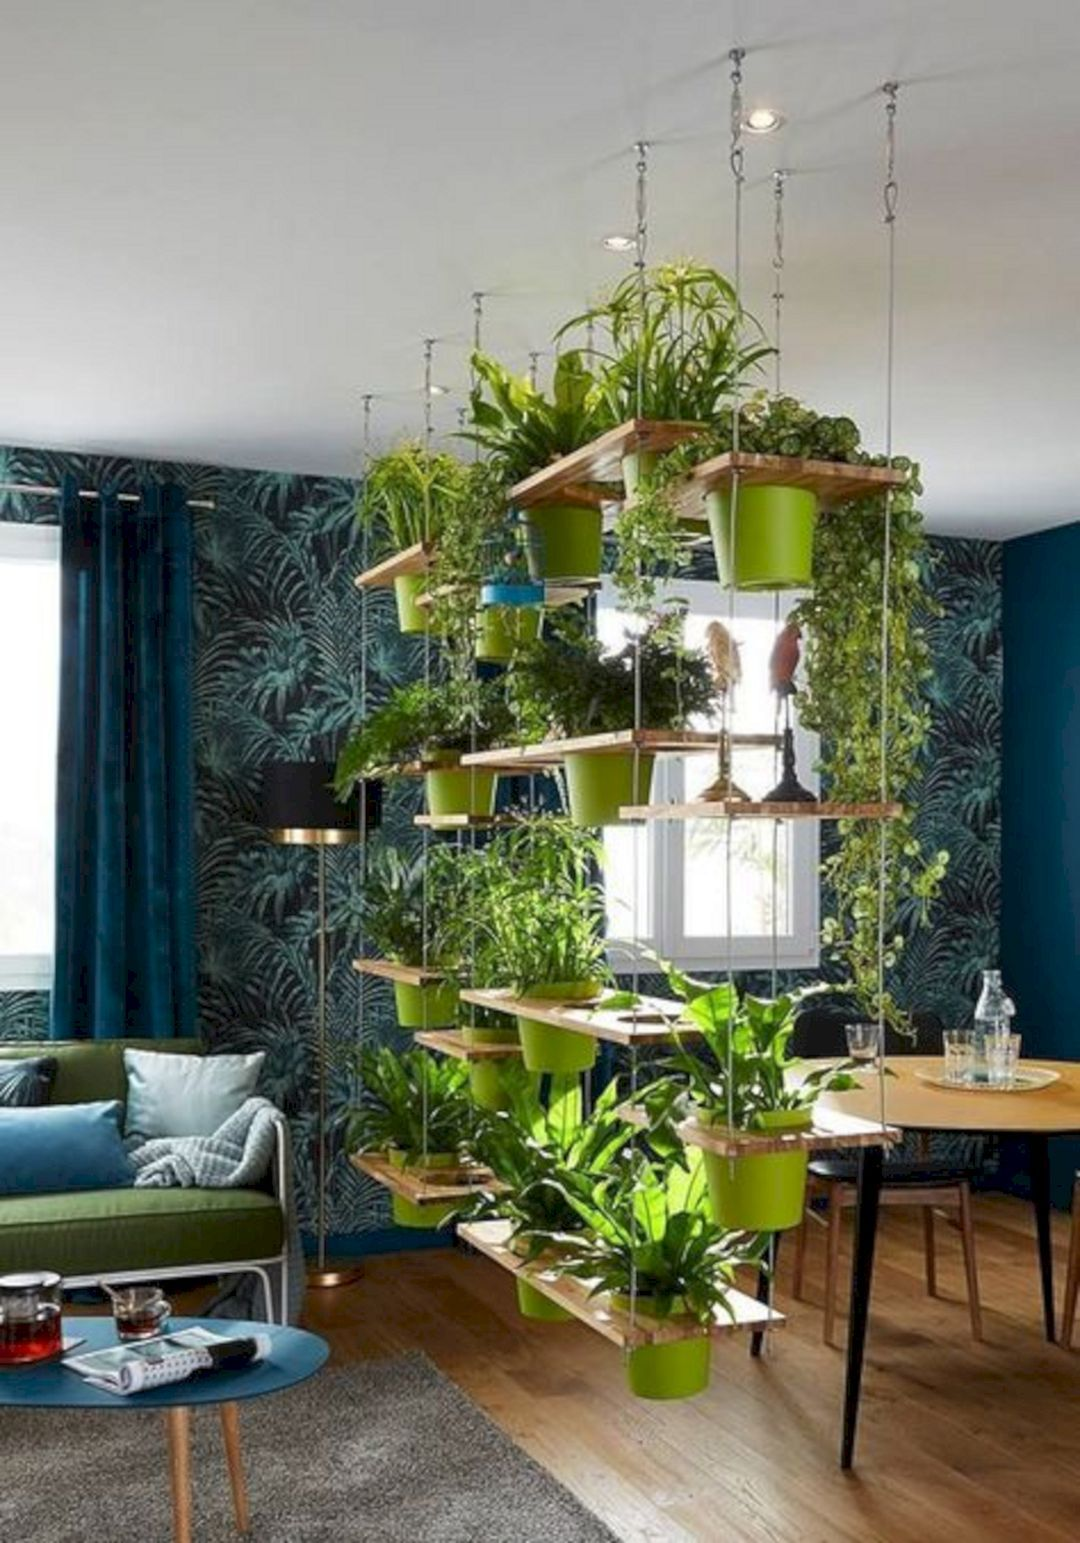 12 Incredible Indoor Garden Decoration Ideas To Make Fresh Home Design Decorits Plant Decor Indoor Room With Plants Wood Plant Stand